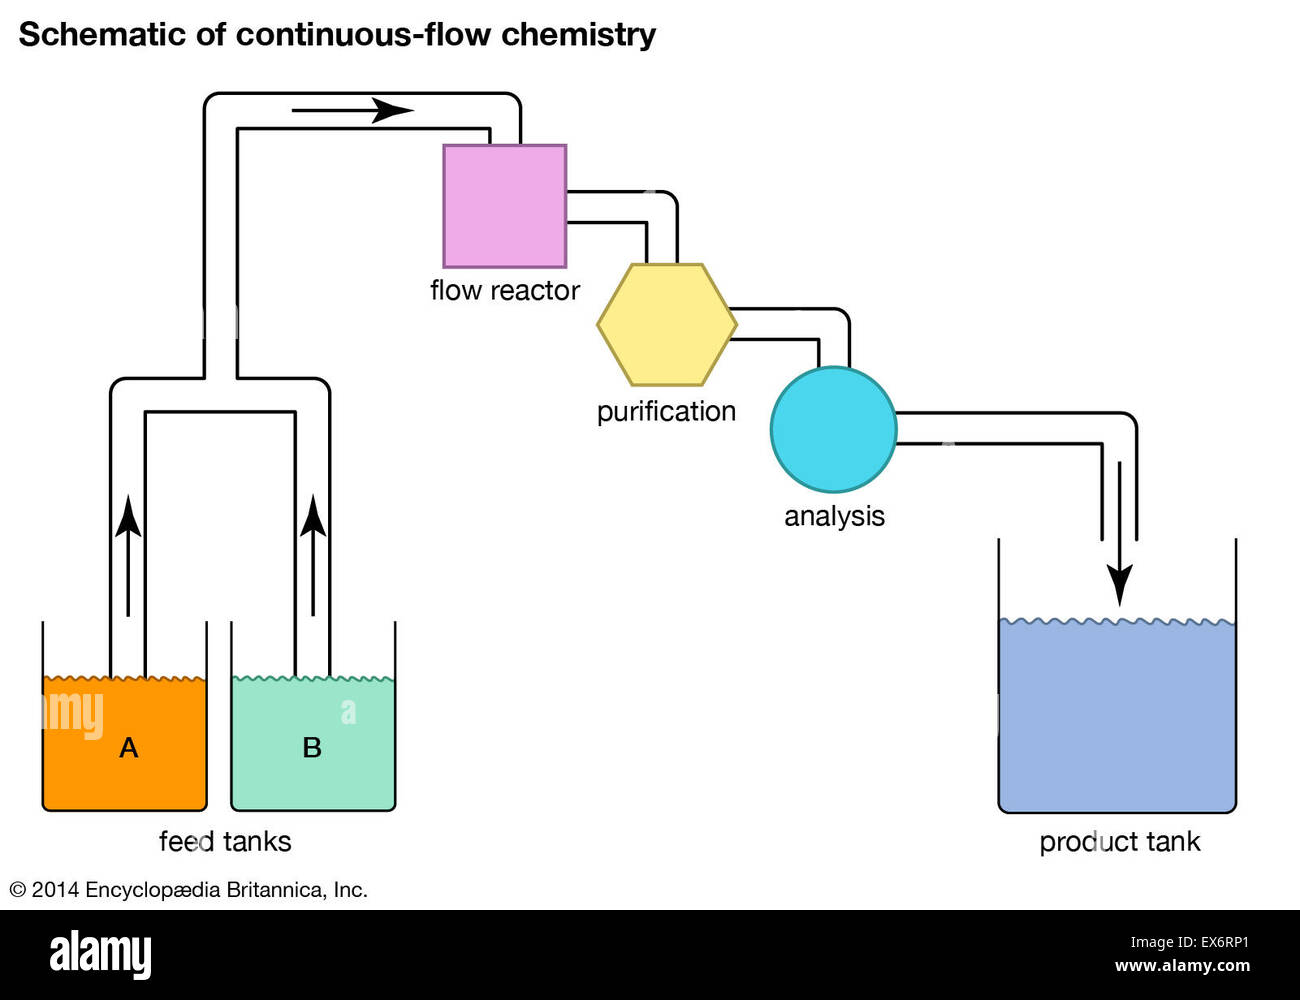 hight resolution of schematic of continuous flow chemistry